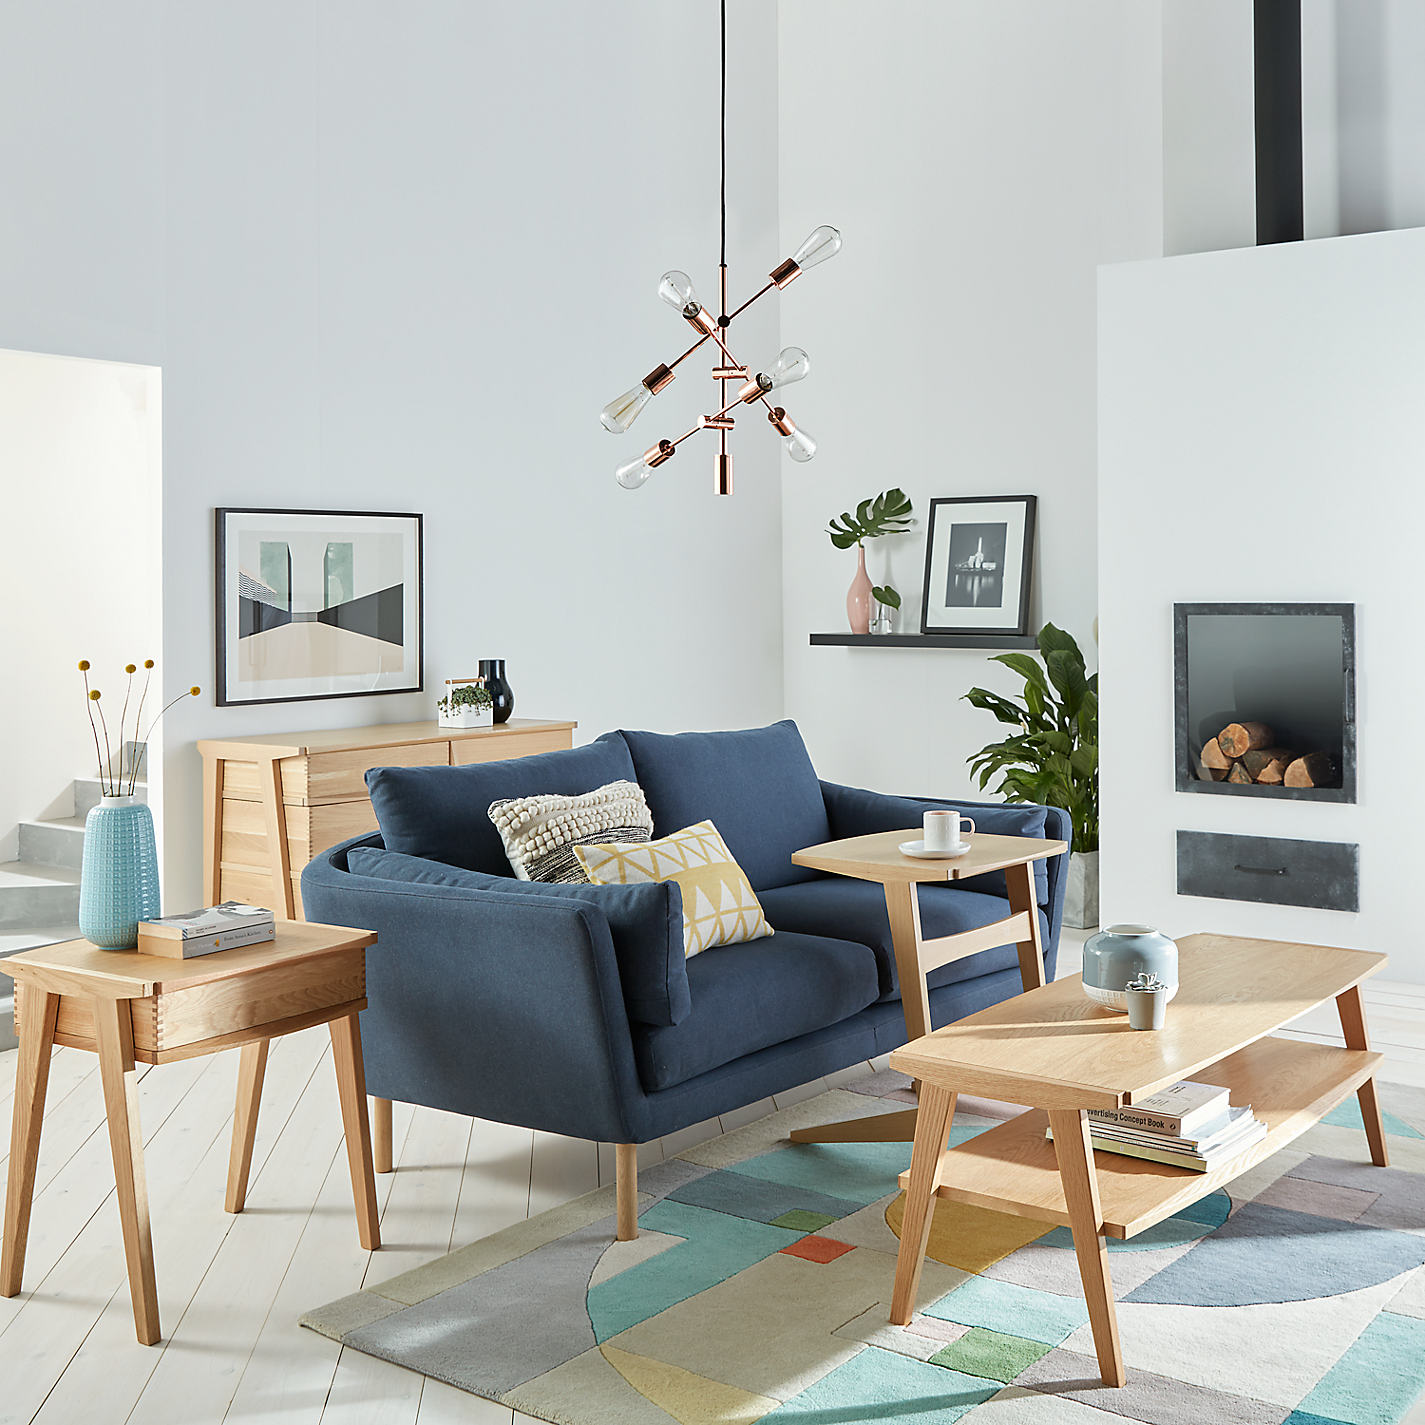 John lewis living room ideas for Living room ideas john lewis